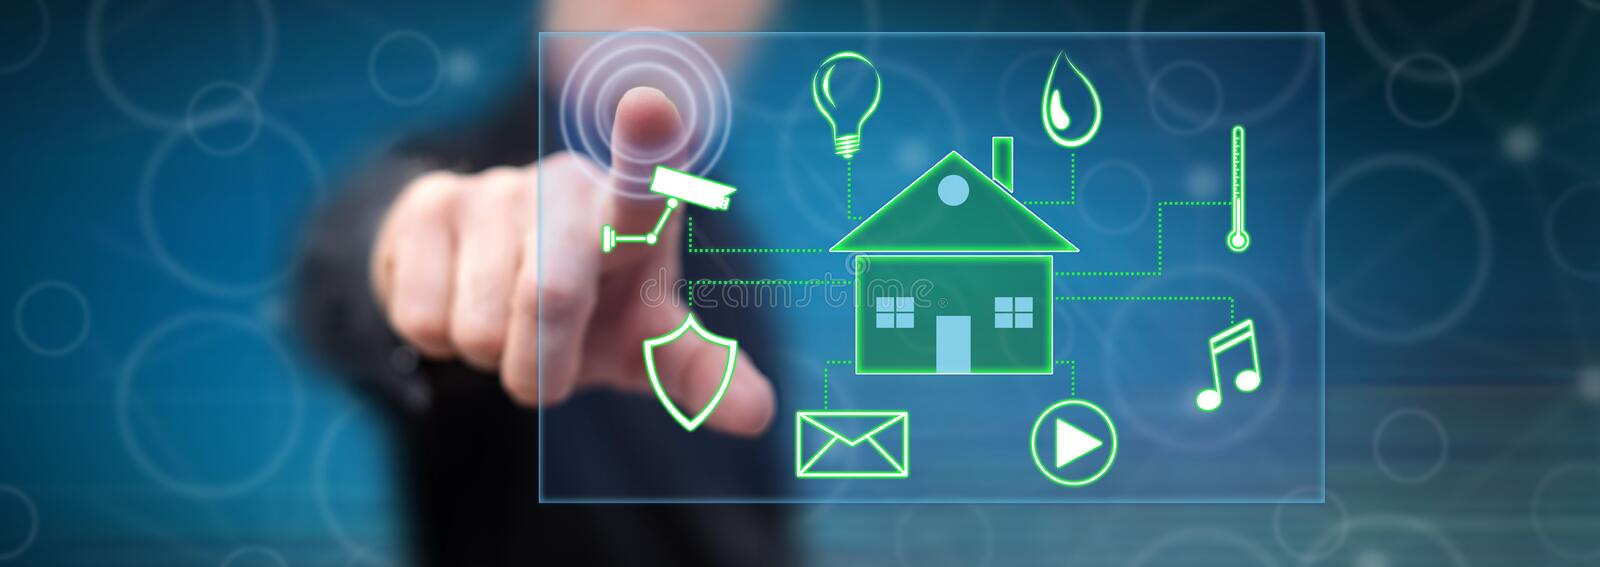 Man touching a digital smart home automation concept stock photography